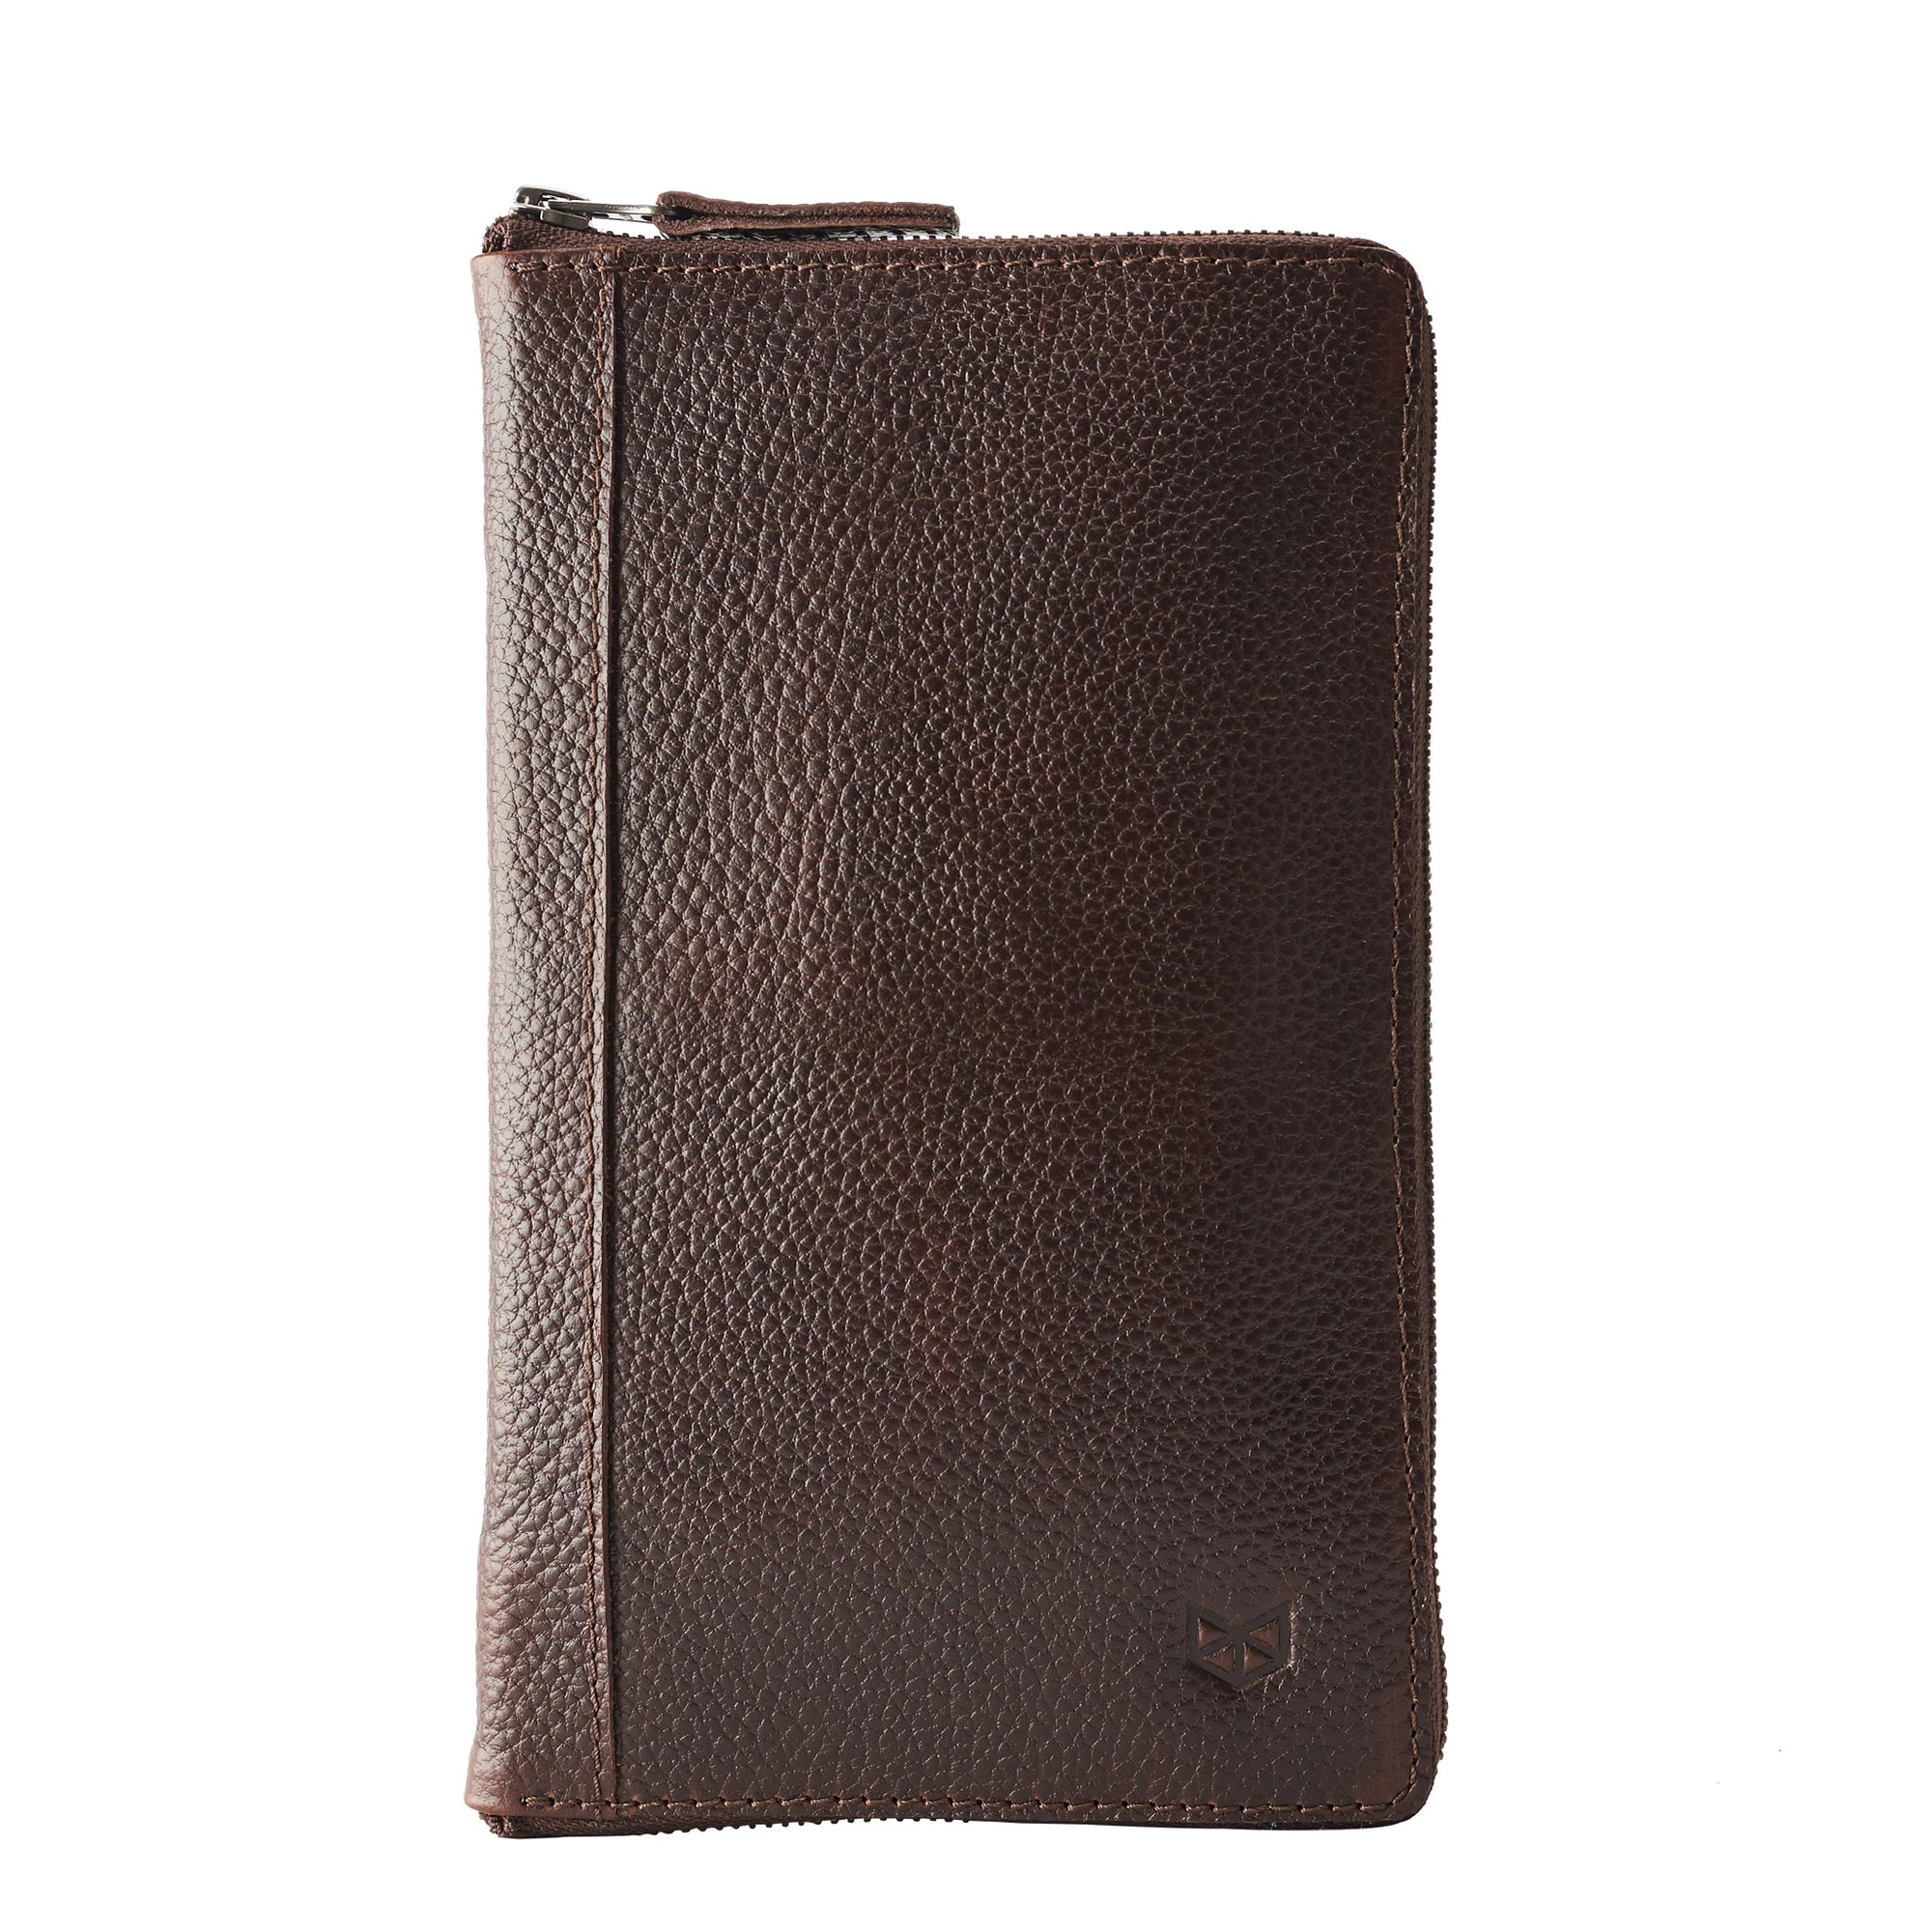 Cover.  Dark brown leather passport for travelers, gifts for men. Travel journal, document organizer holder